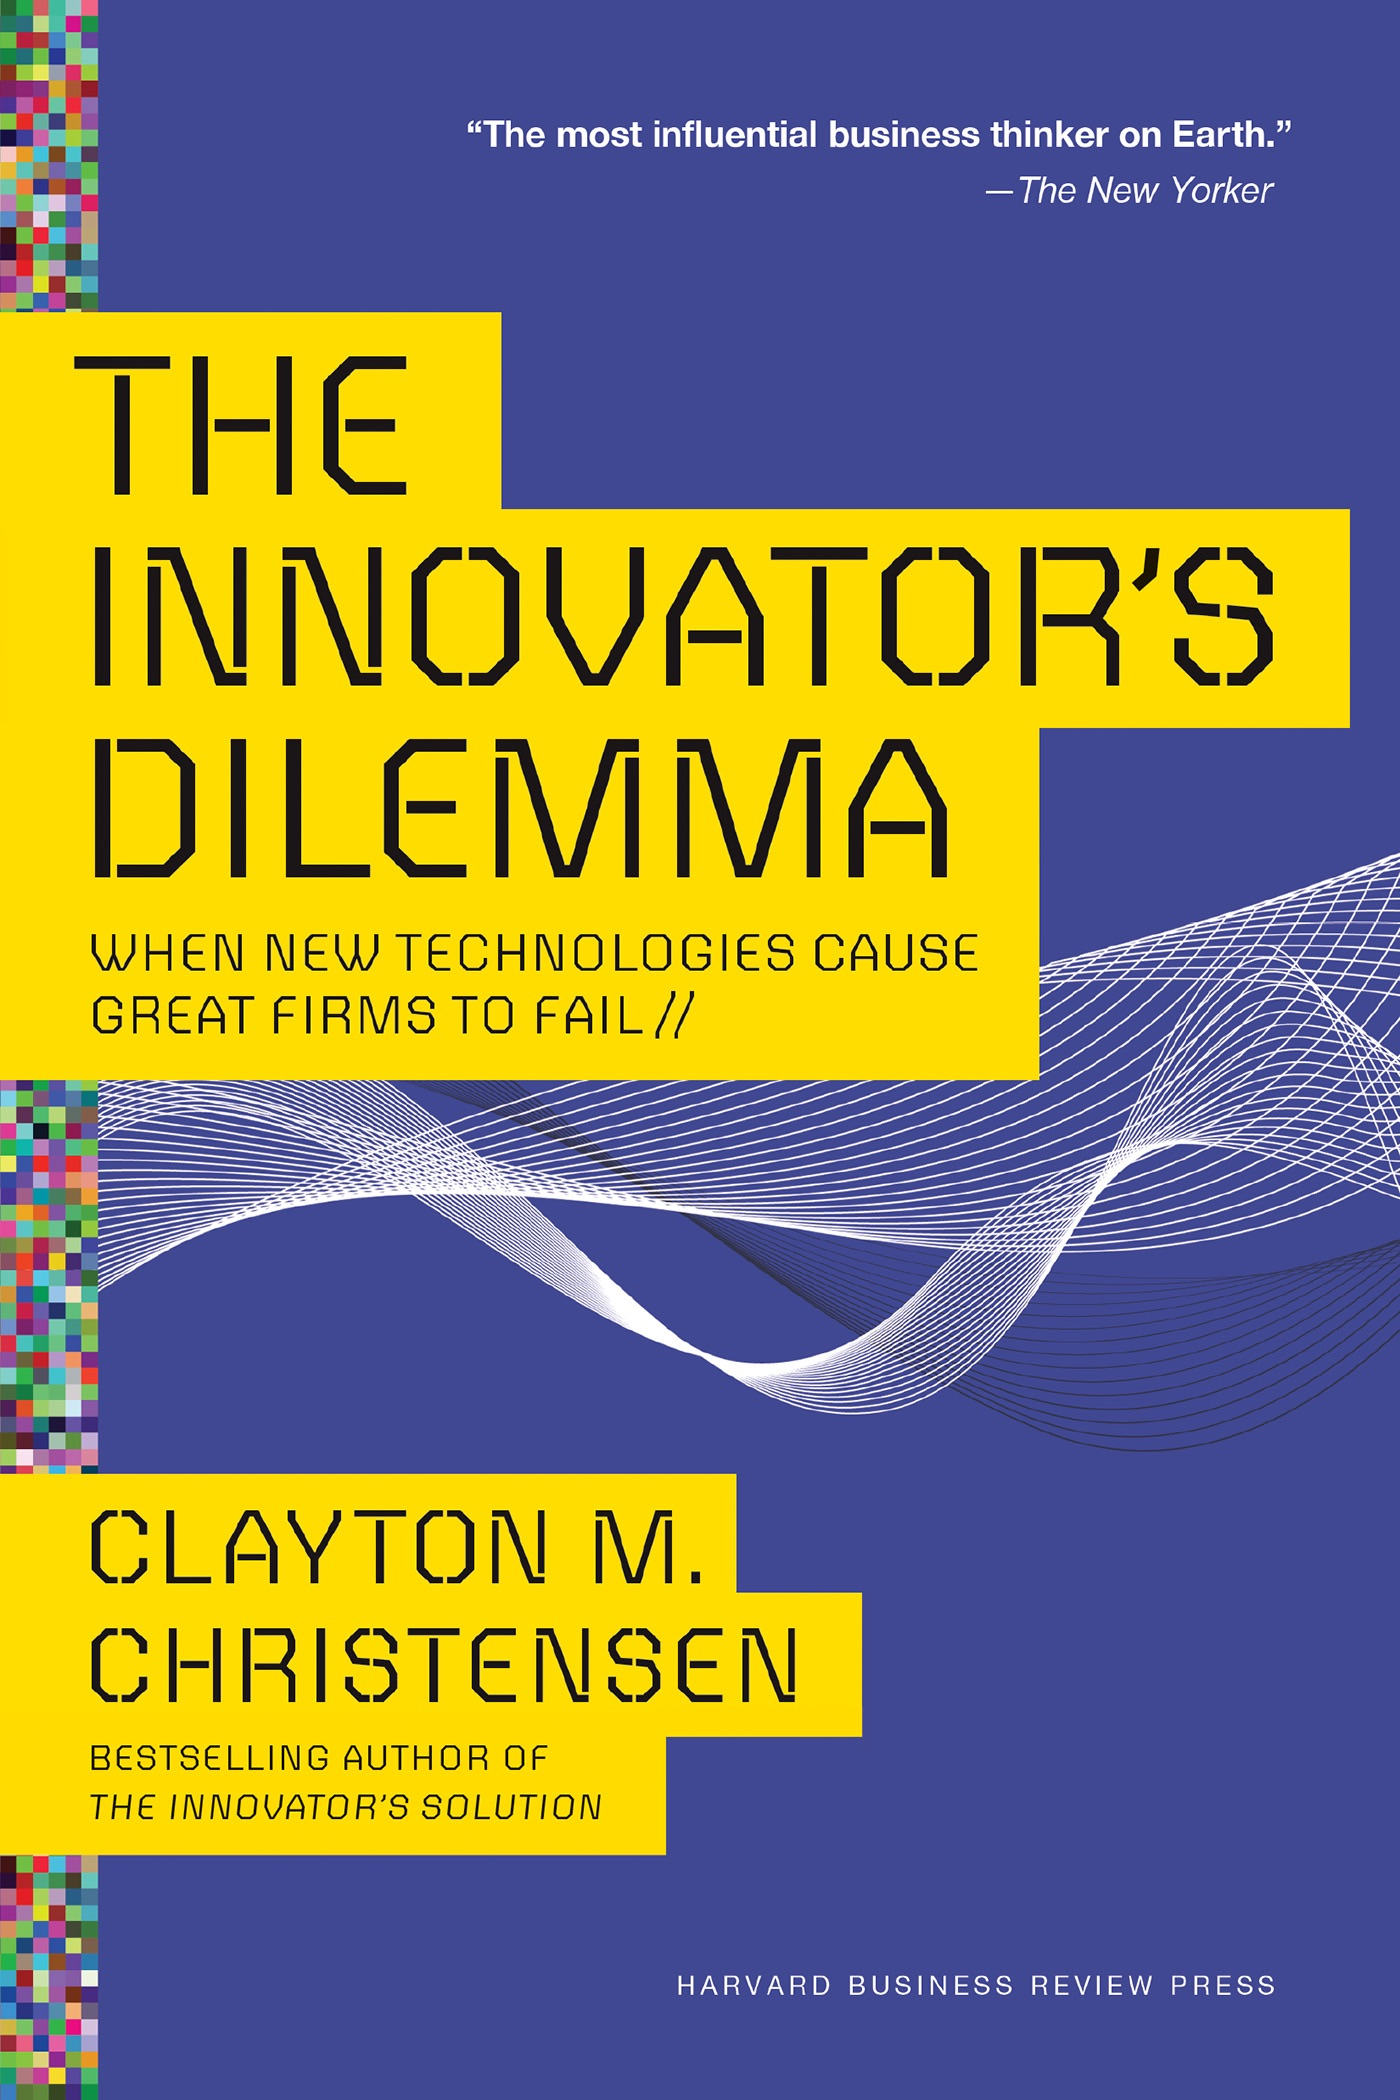 Book Cover of The Innovator's Dilemma